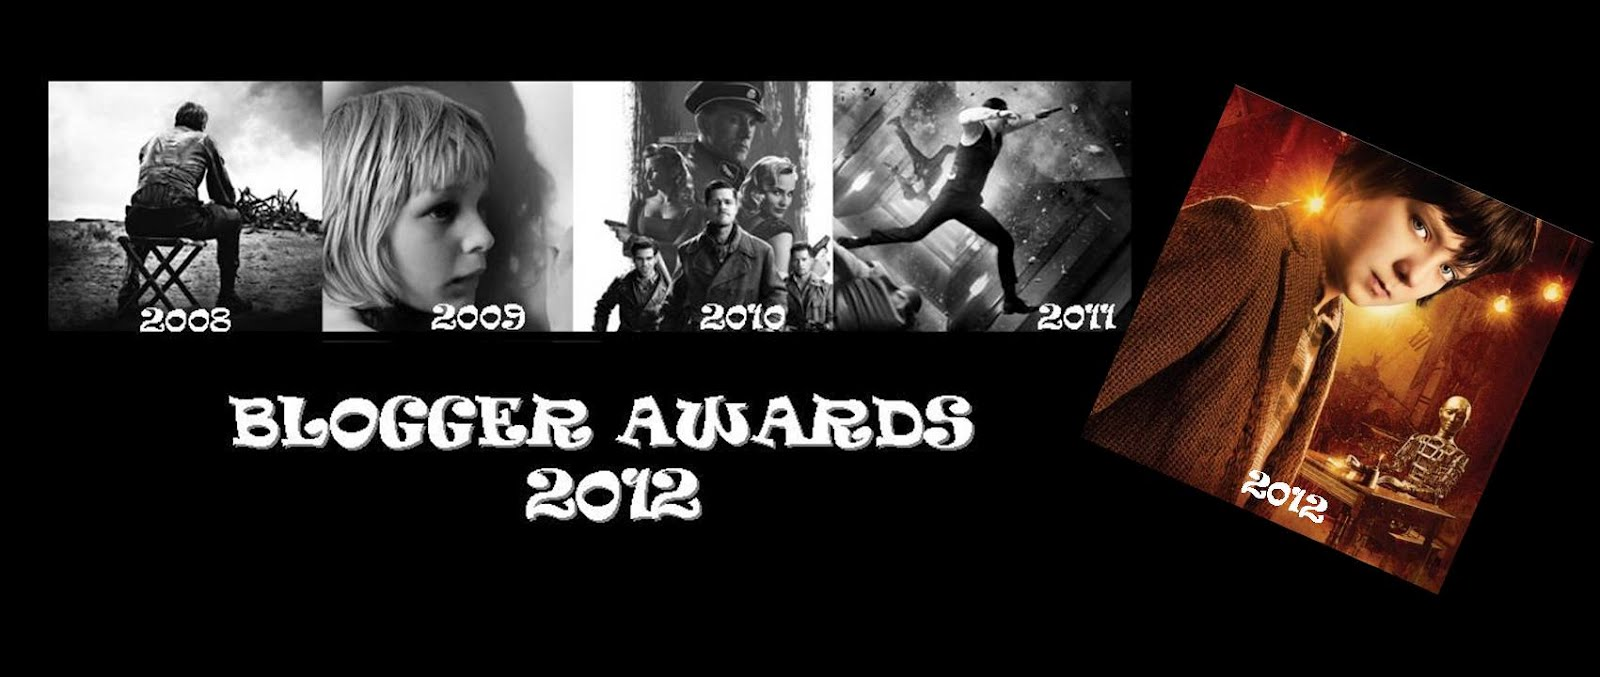 BLOGGER AWARDS 2012